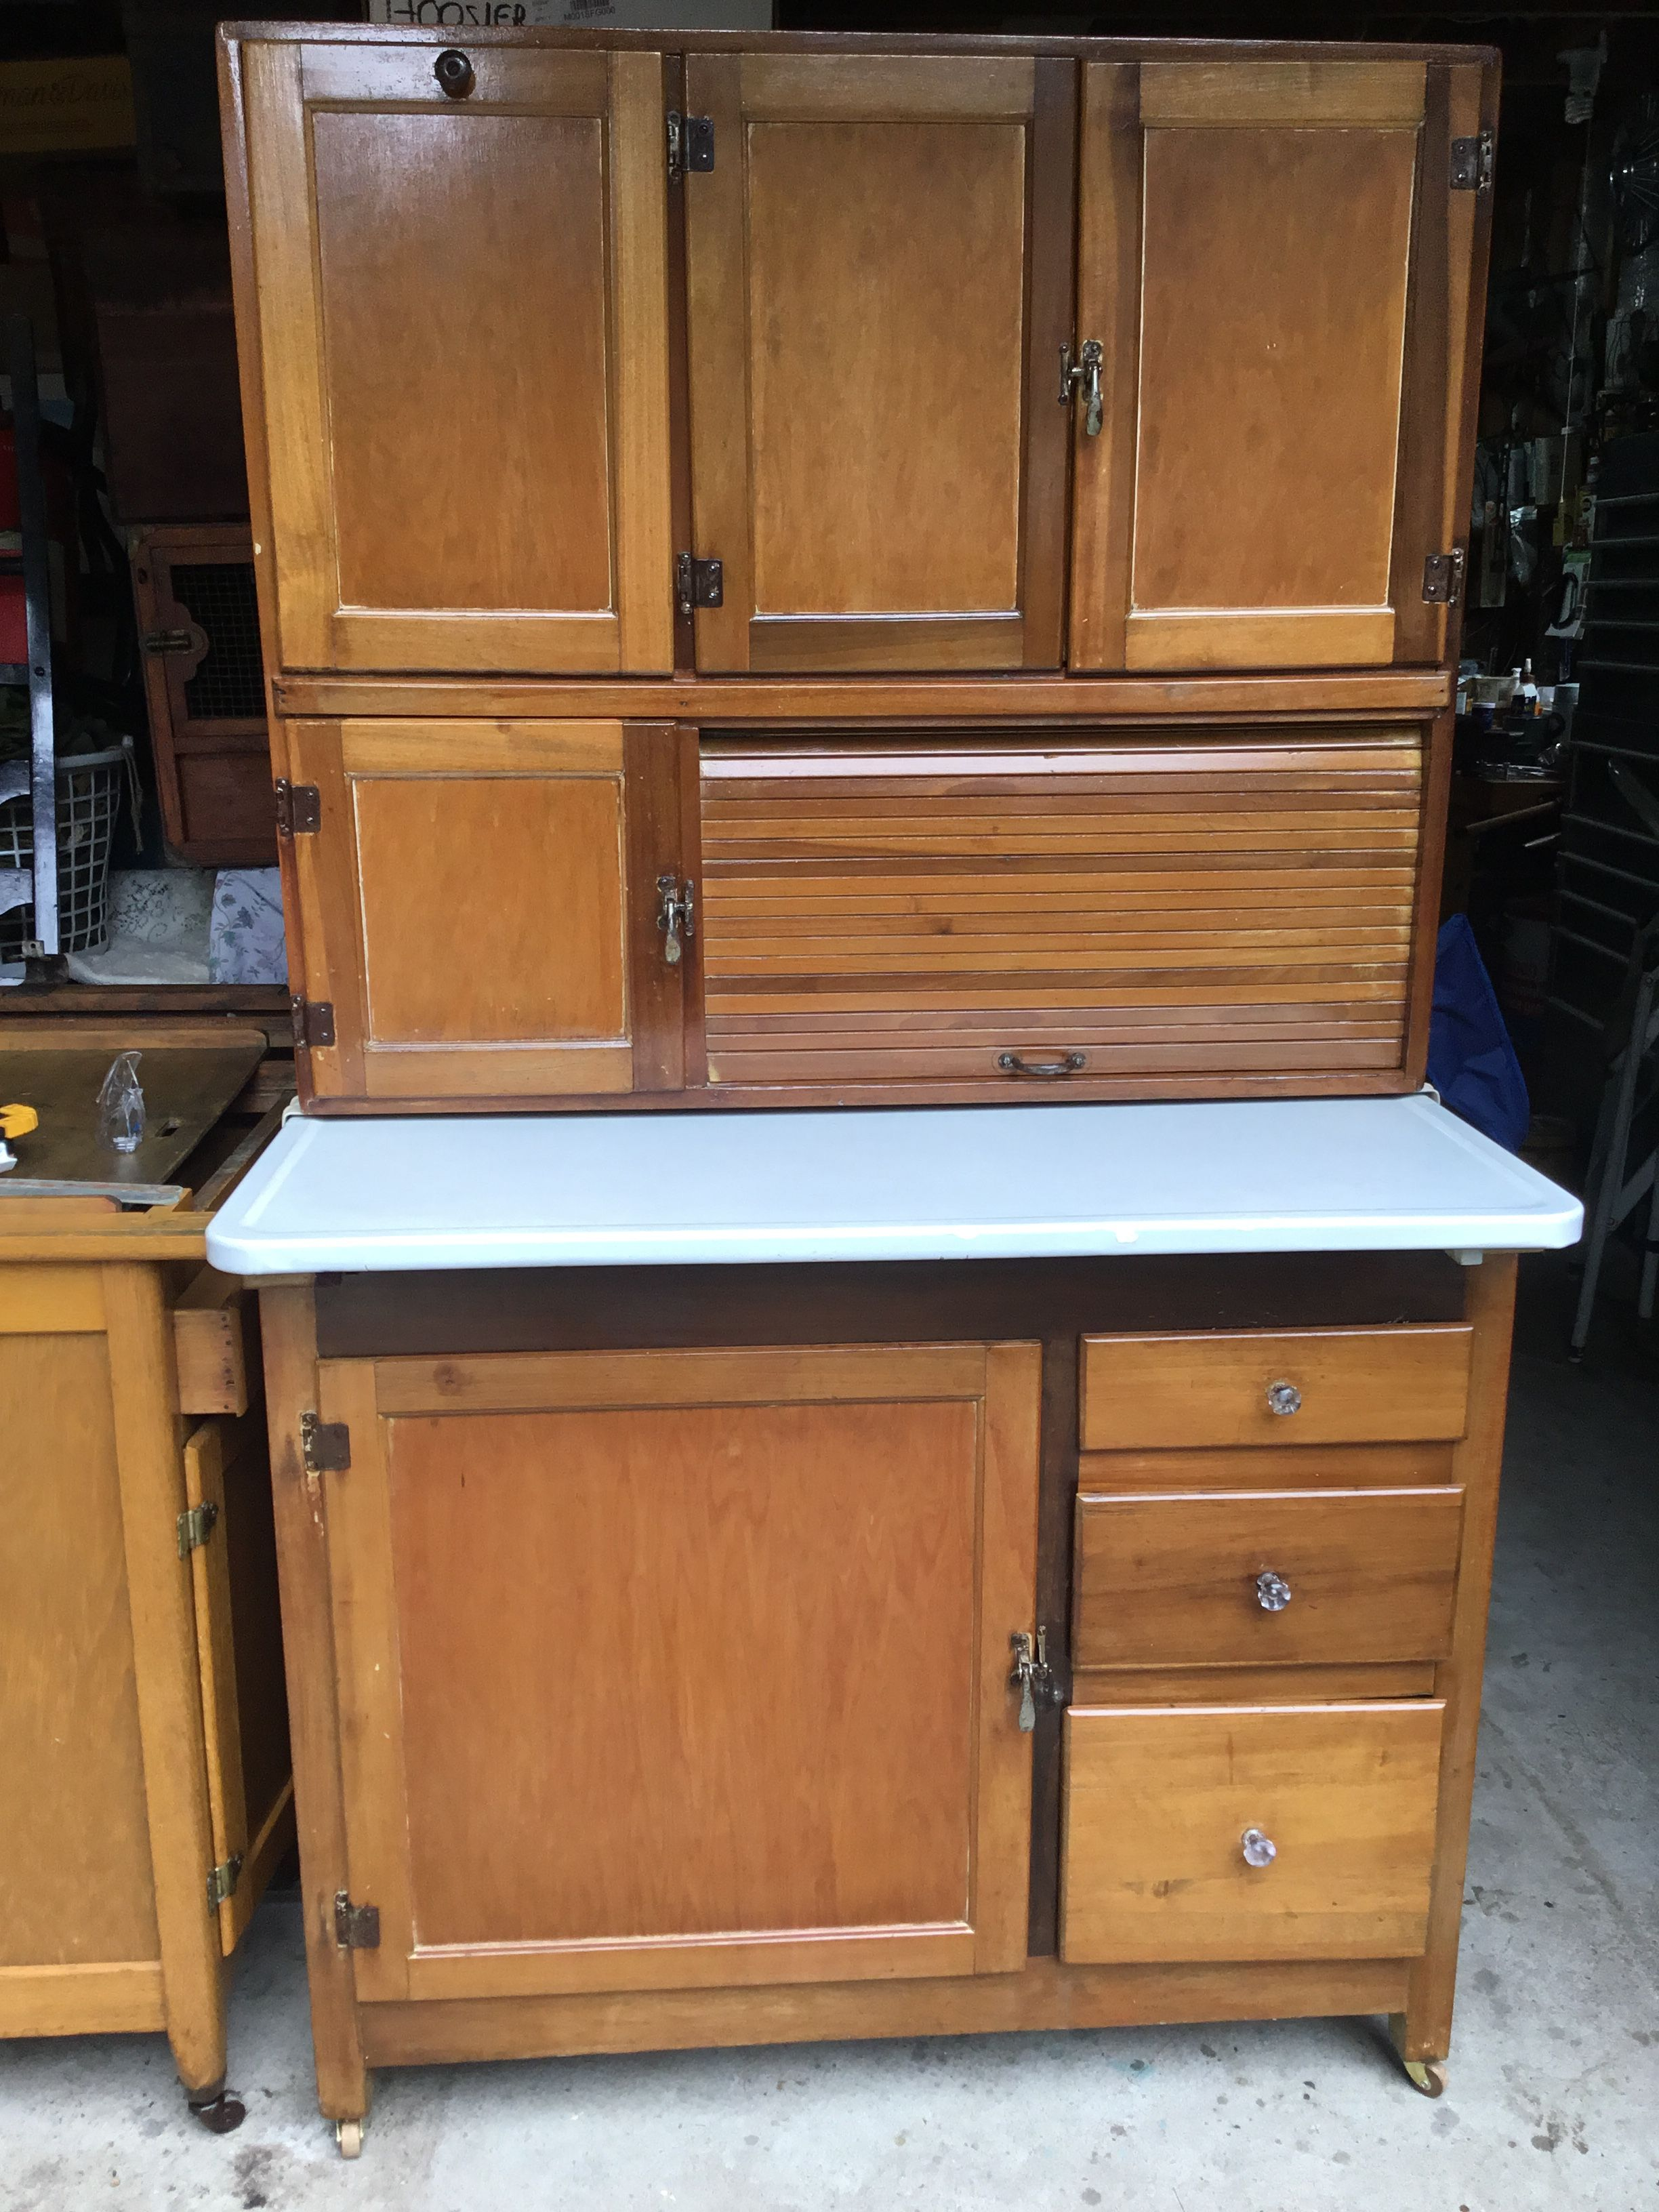 Marsh Kitchen Cabinet Made Of Mixed Woods In Original Condition Mixed Wood Cabinet Kitchen Cabinets